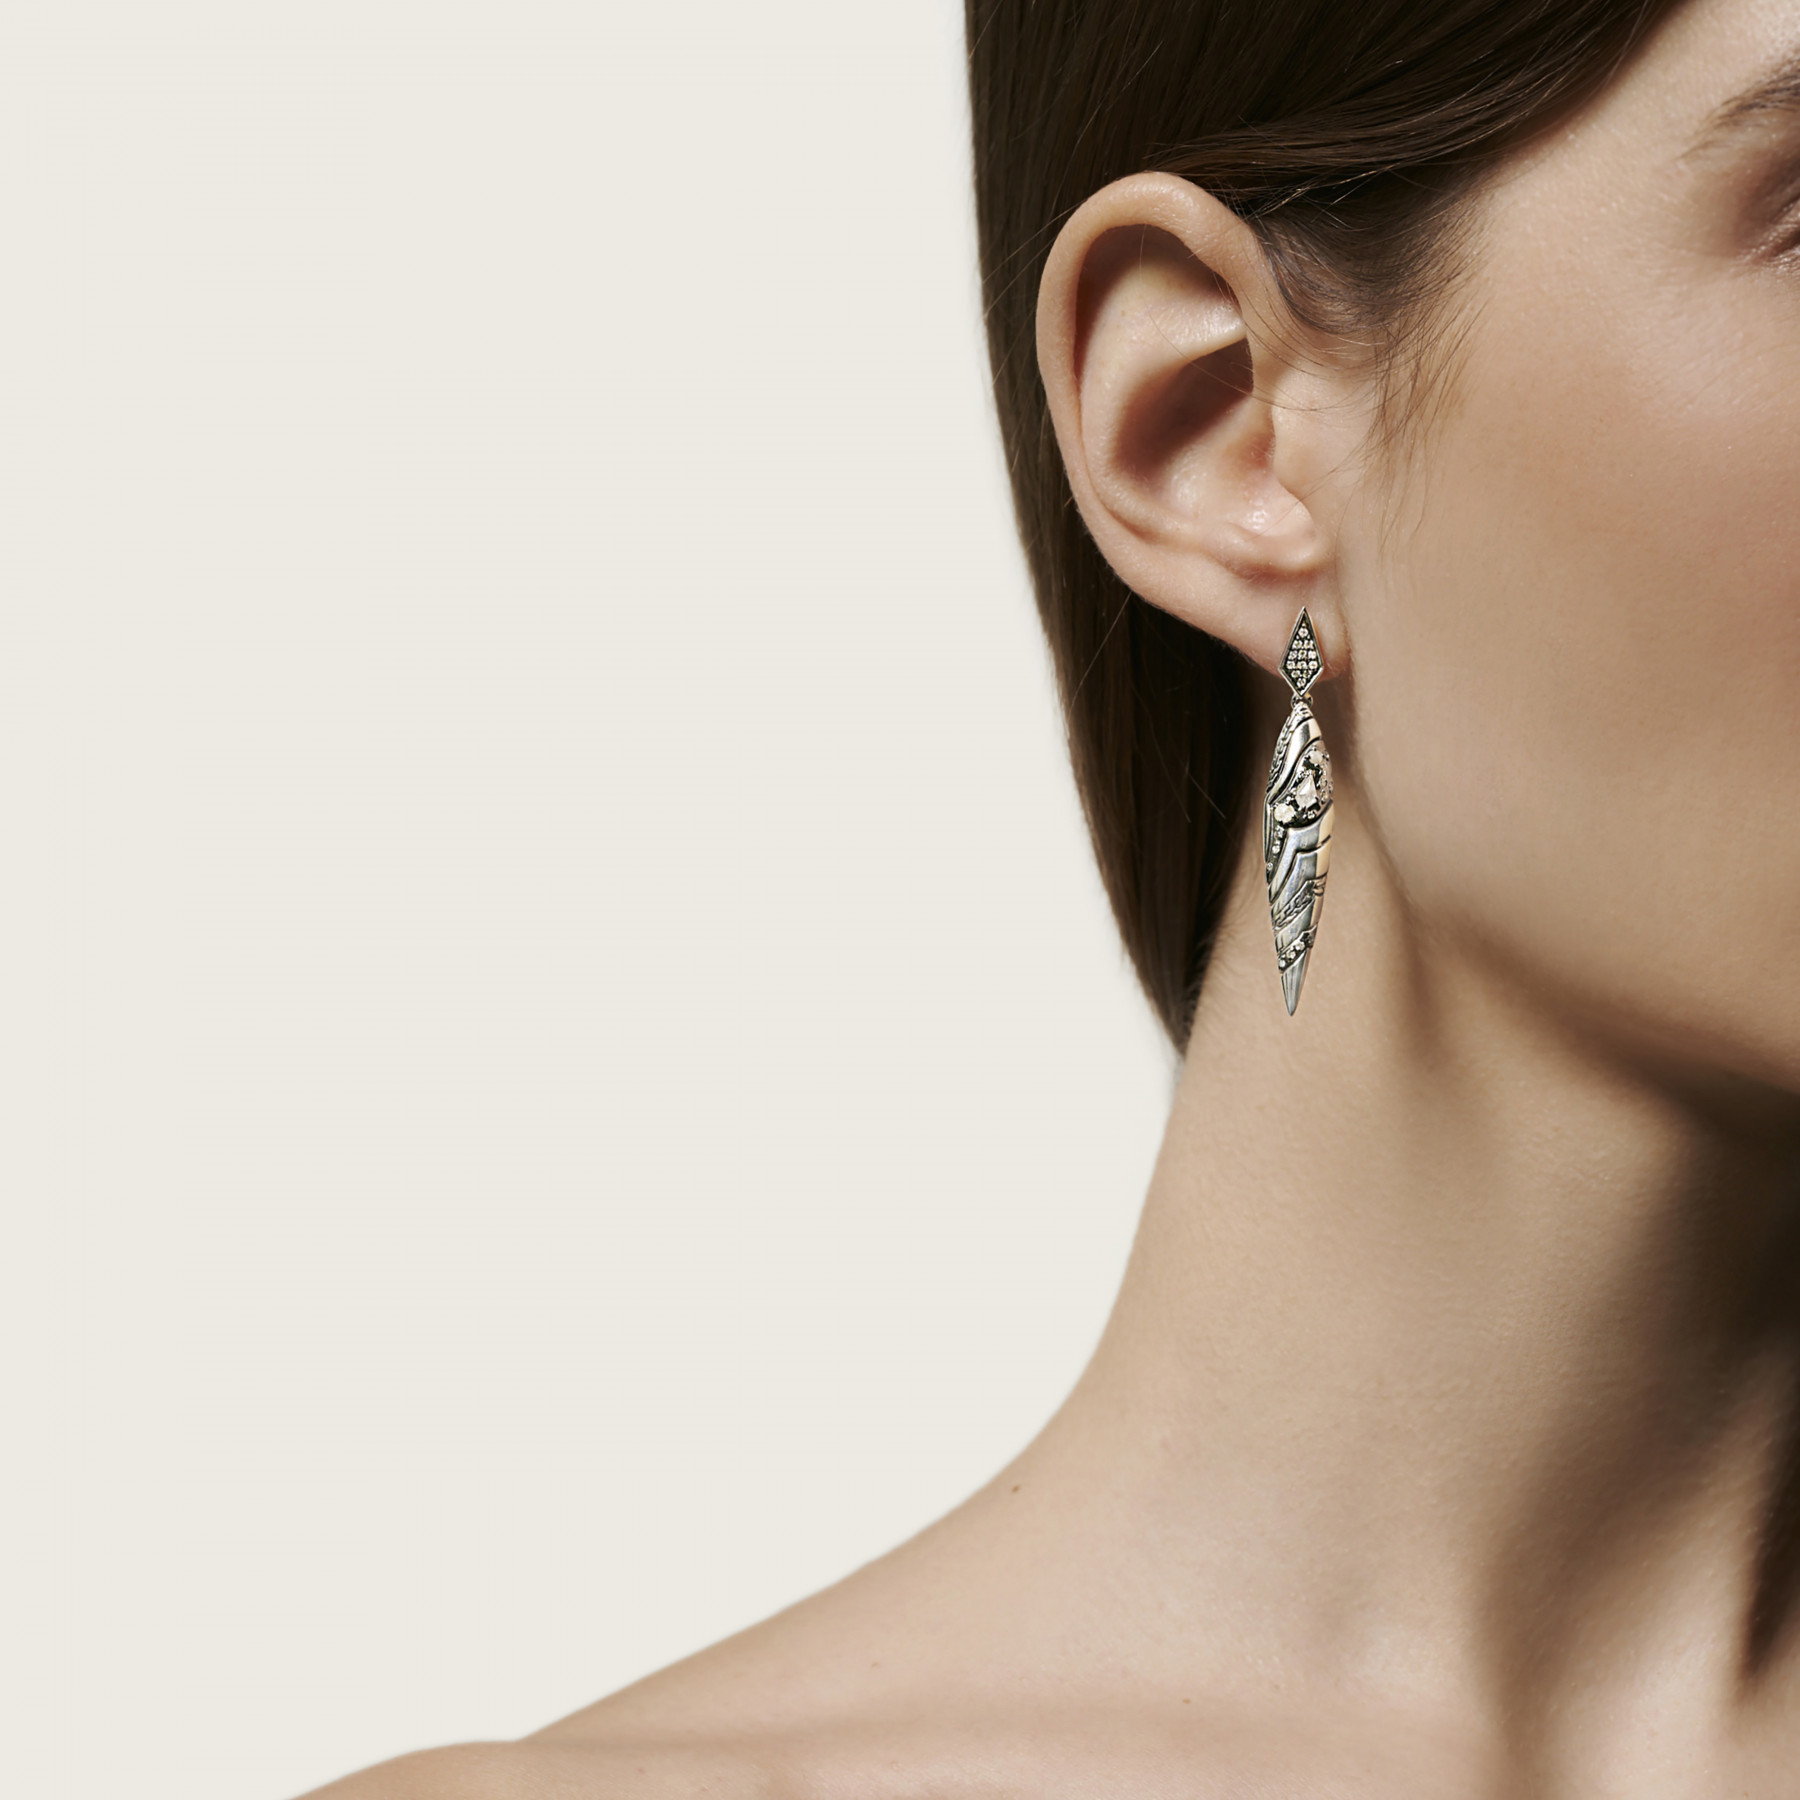 John Hardy Lahar White and Grey Diamond Spear Earrings on model